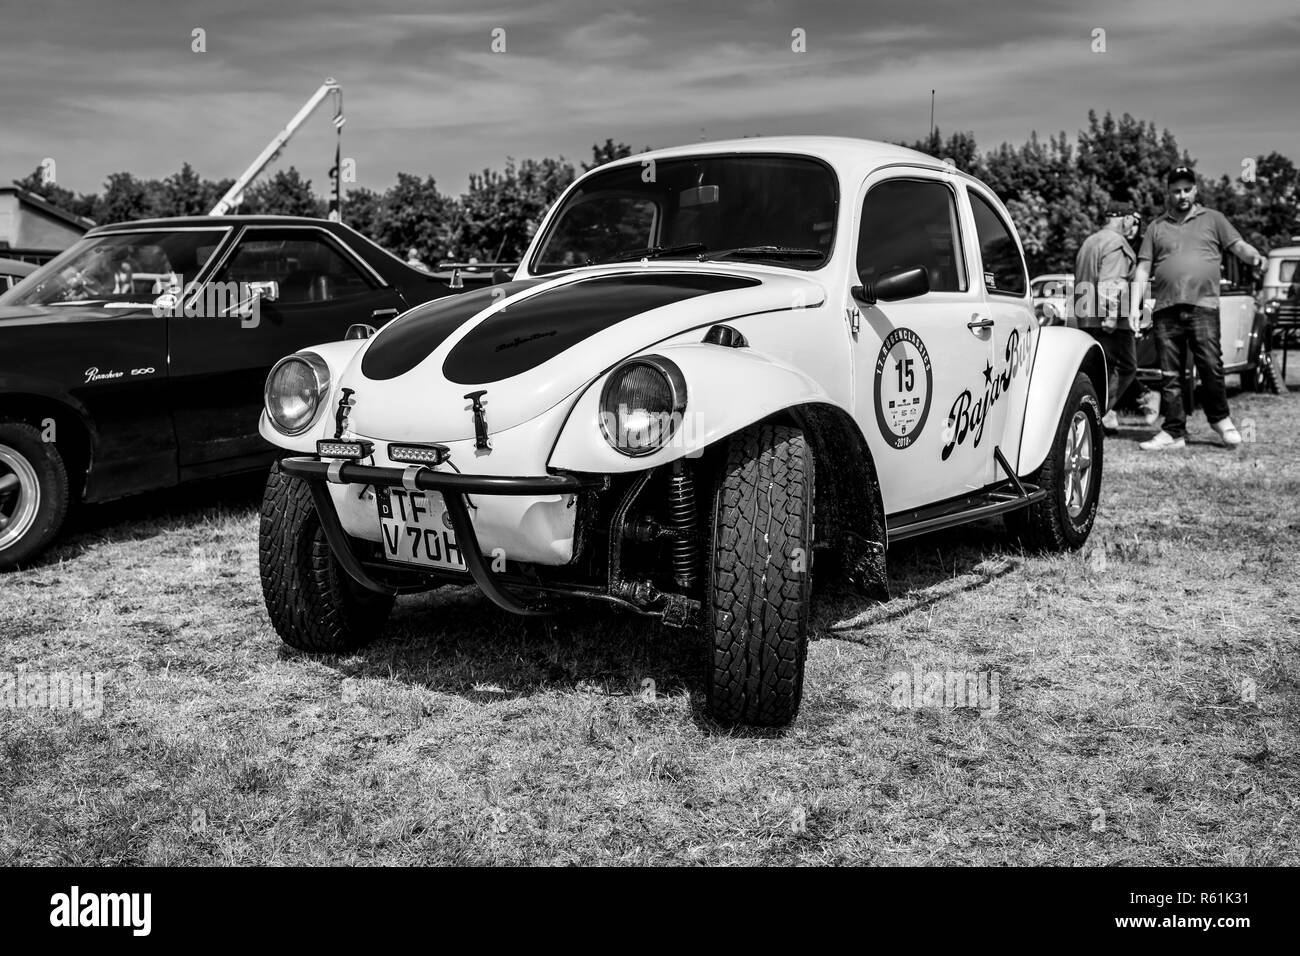 PAAREN IM GLIEN, GERMANY - MAY 19, 2018: A Baja Bug is an original Volkswagen Beetle modified to operate off-road. Black and white. Exhibition 'Die Ol - Stock Image